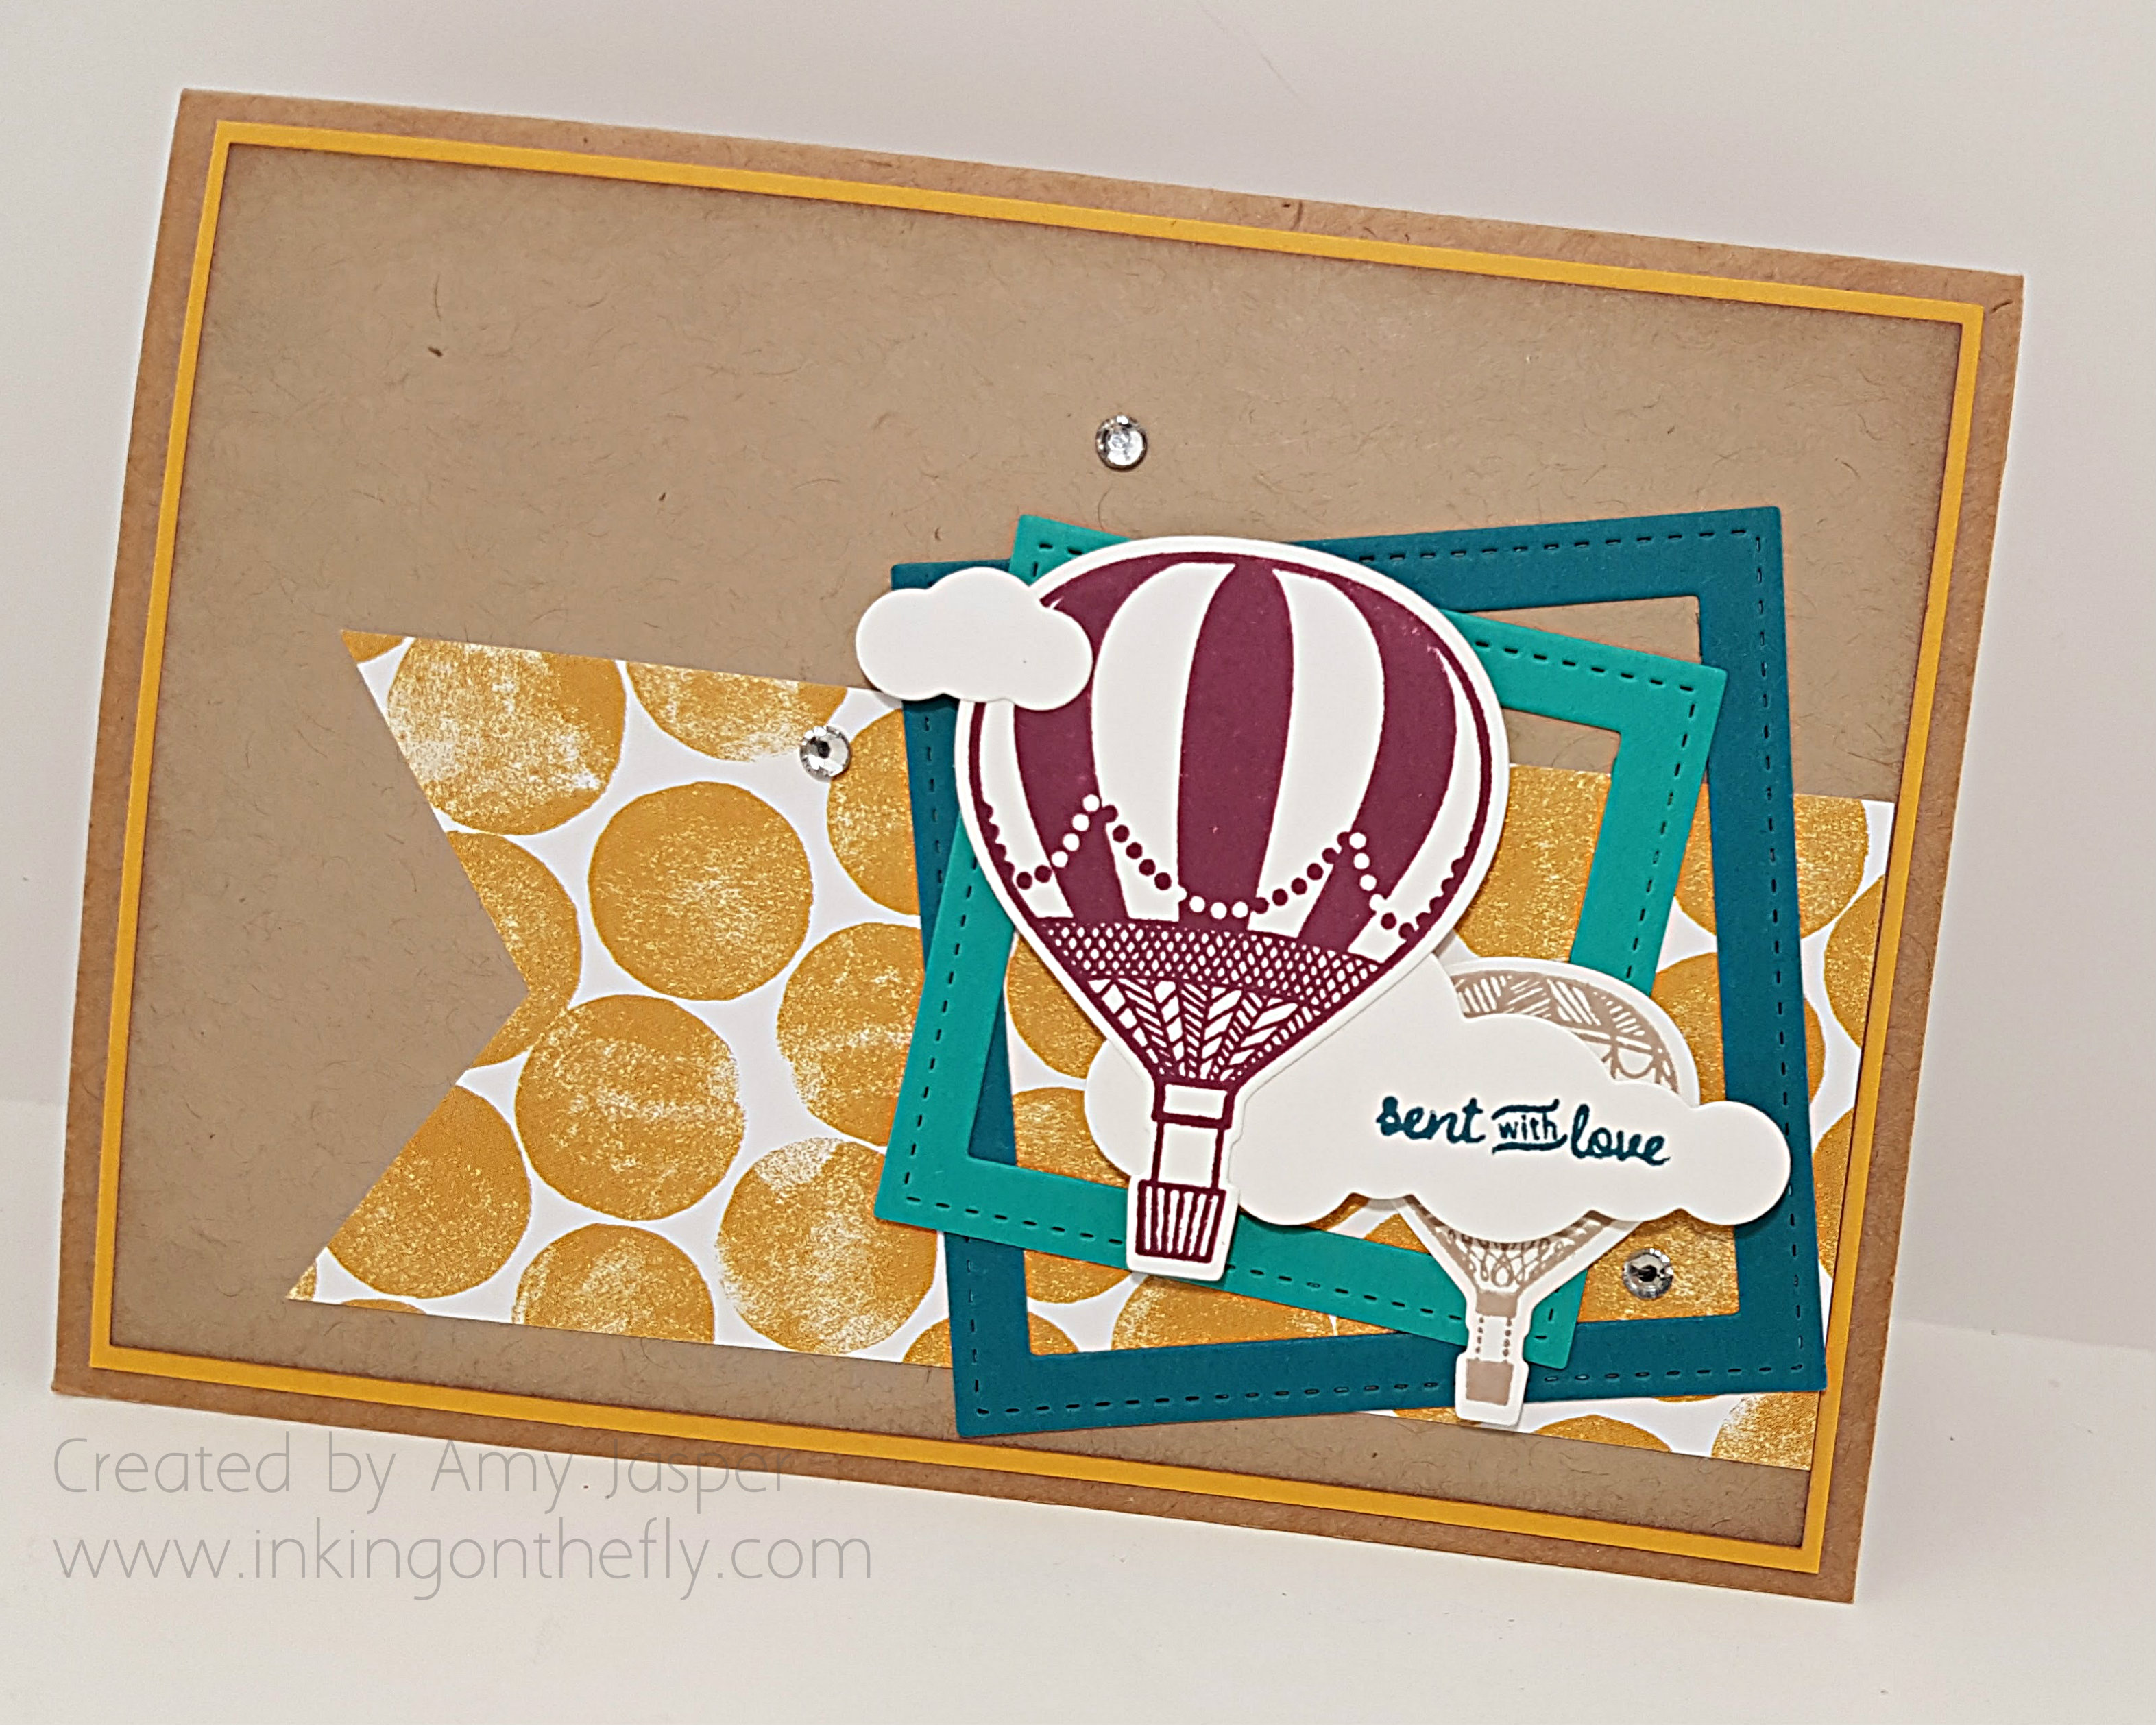 Sending Smiles Shadow Box Card by Amy Jasper www.inkingonthefly.com